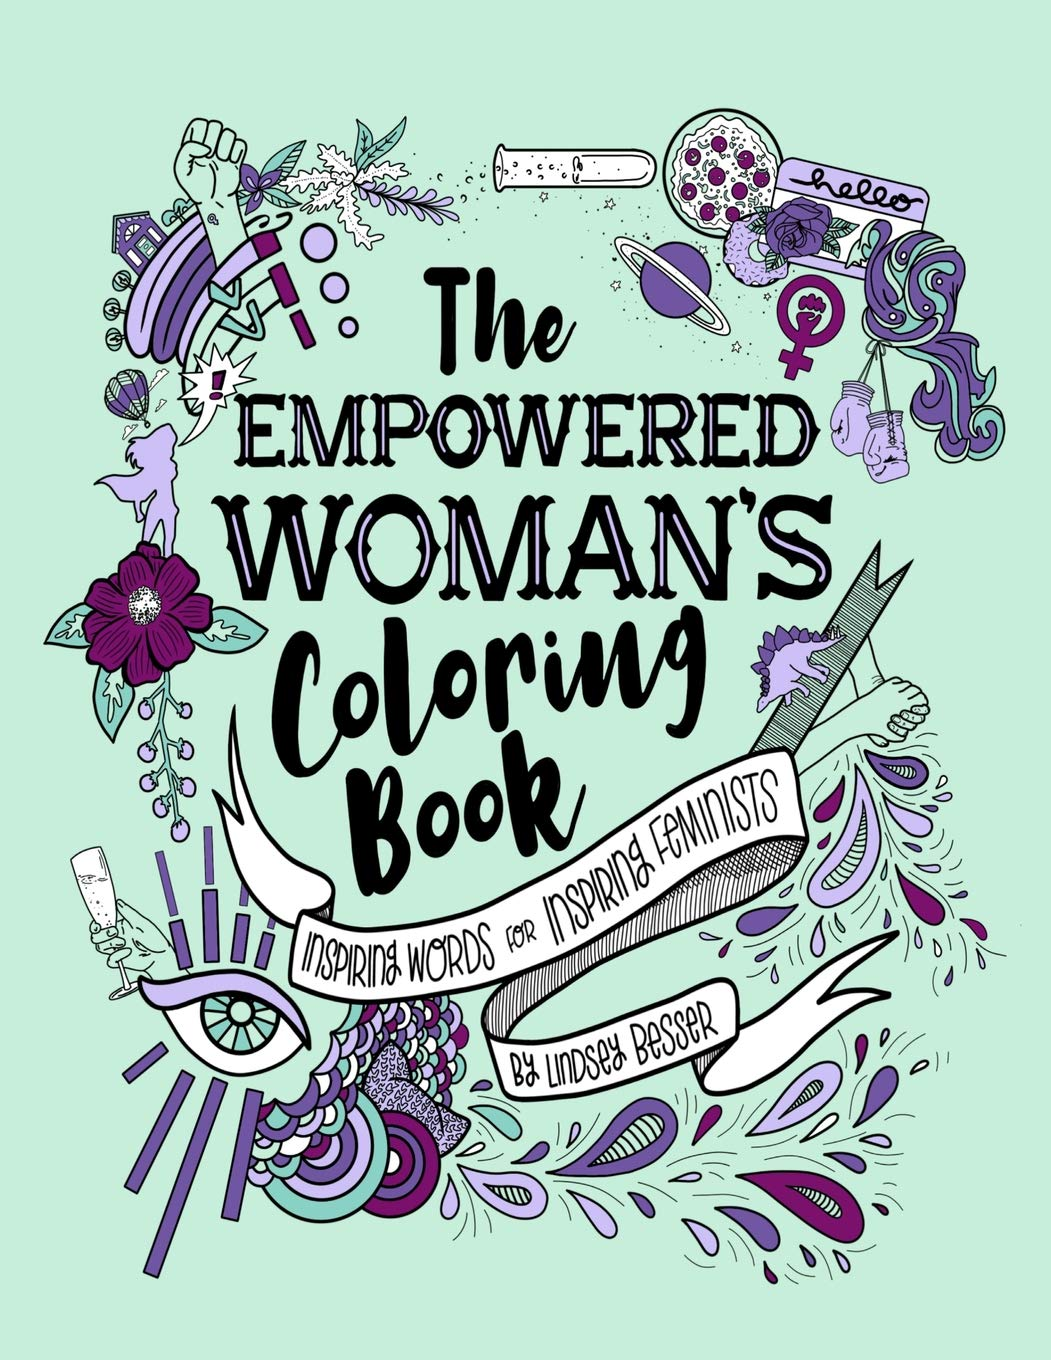 Empowered Woman's Coloring Book